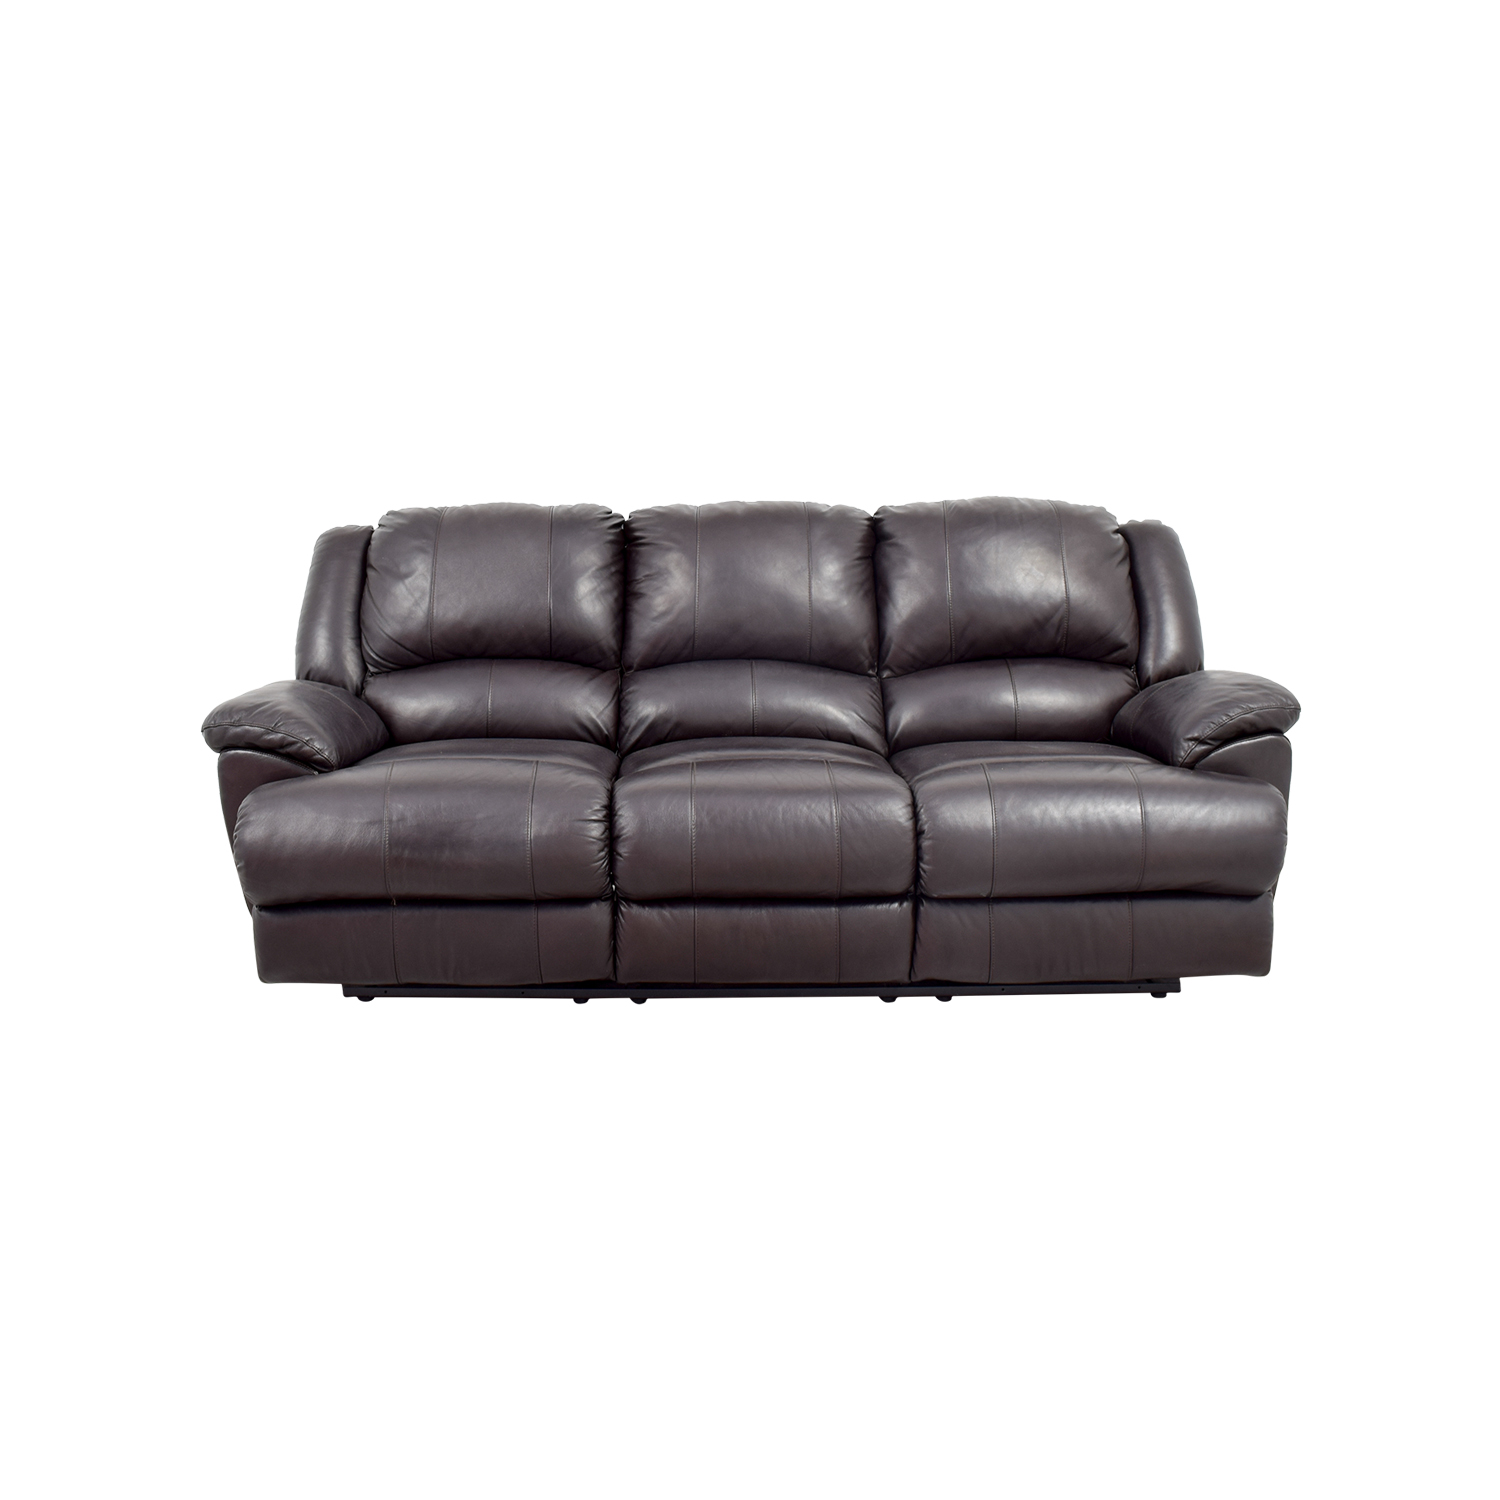 Jennifer Convertibles Jennifer Convertibles Brown Leather Sofa